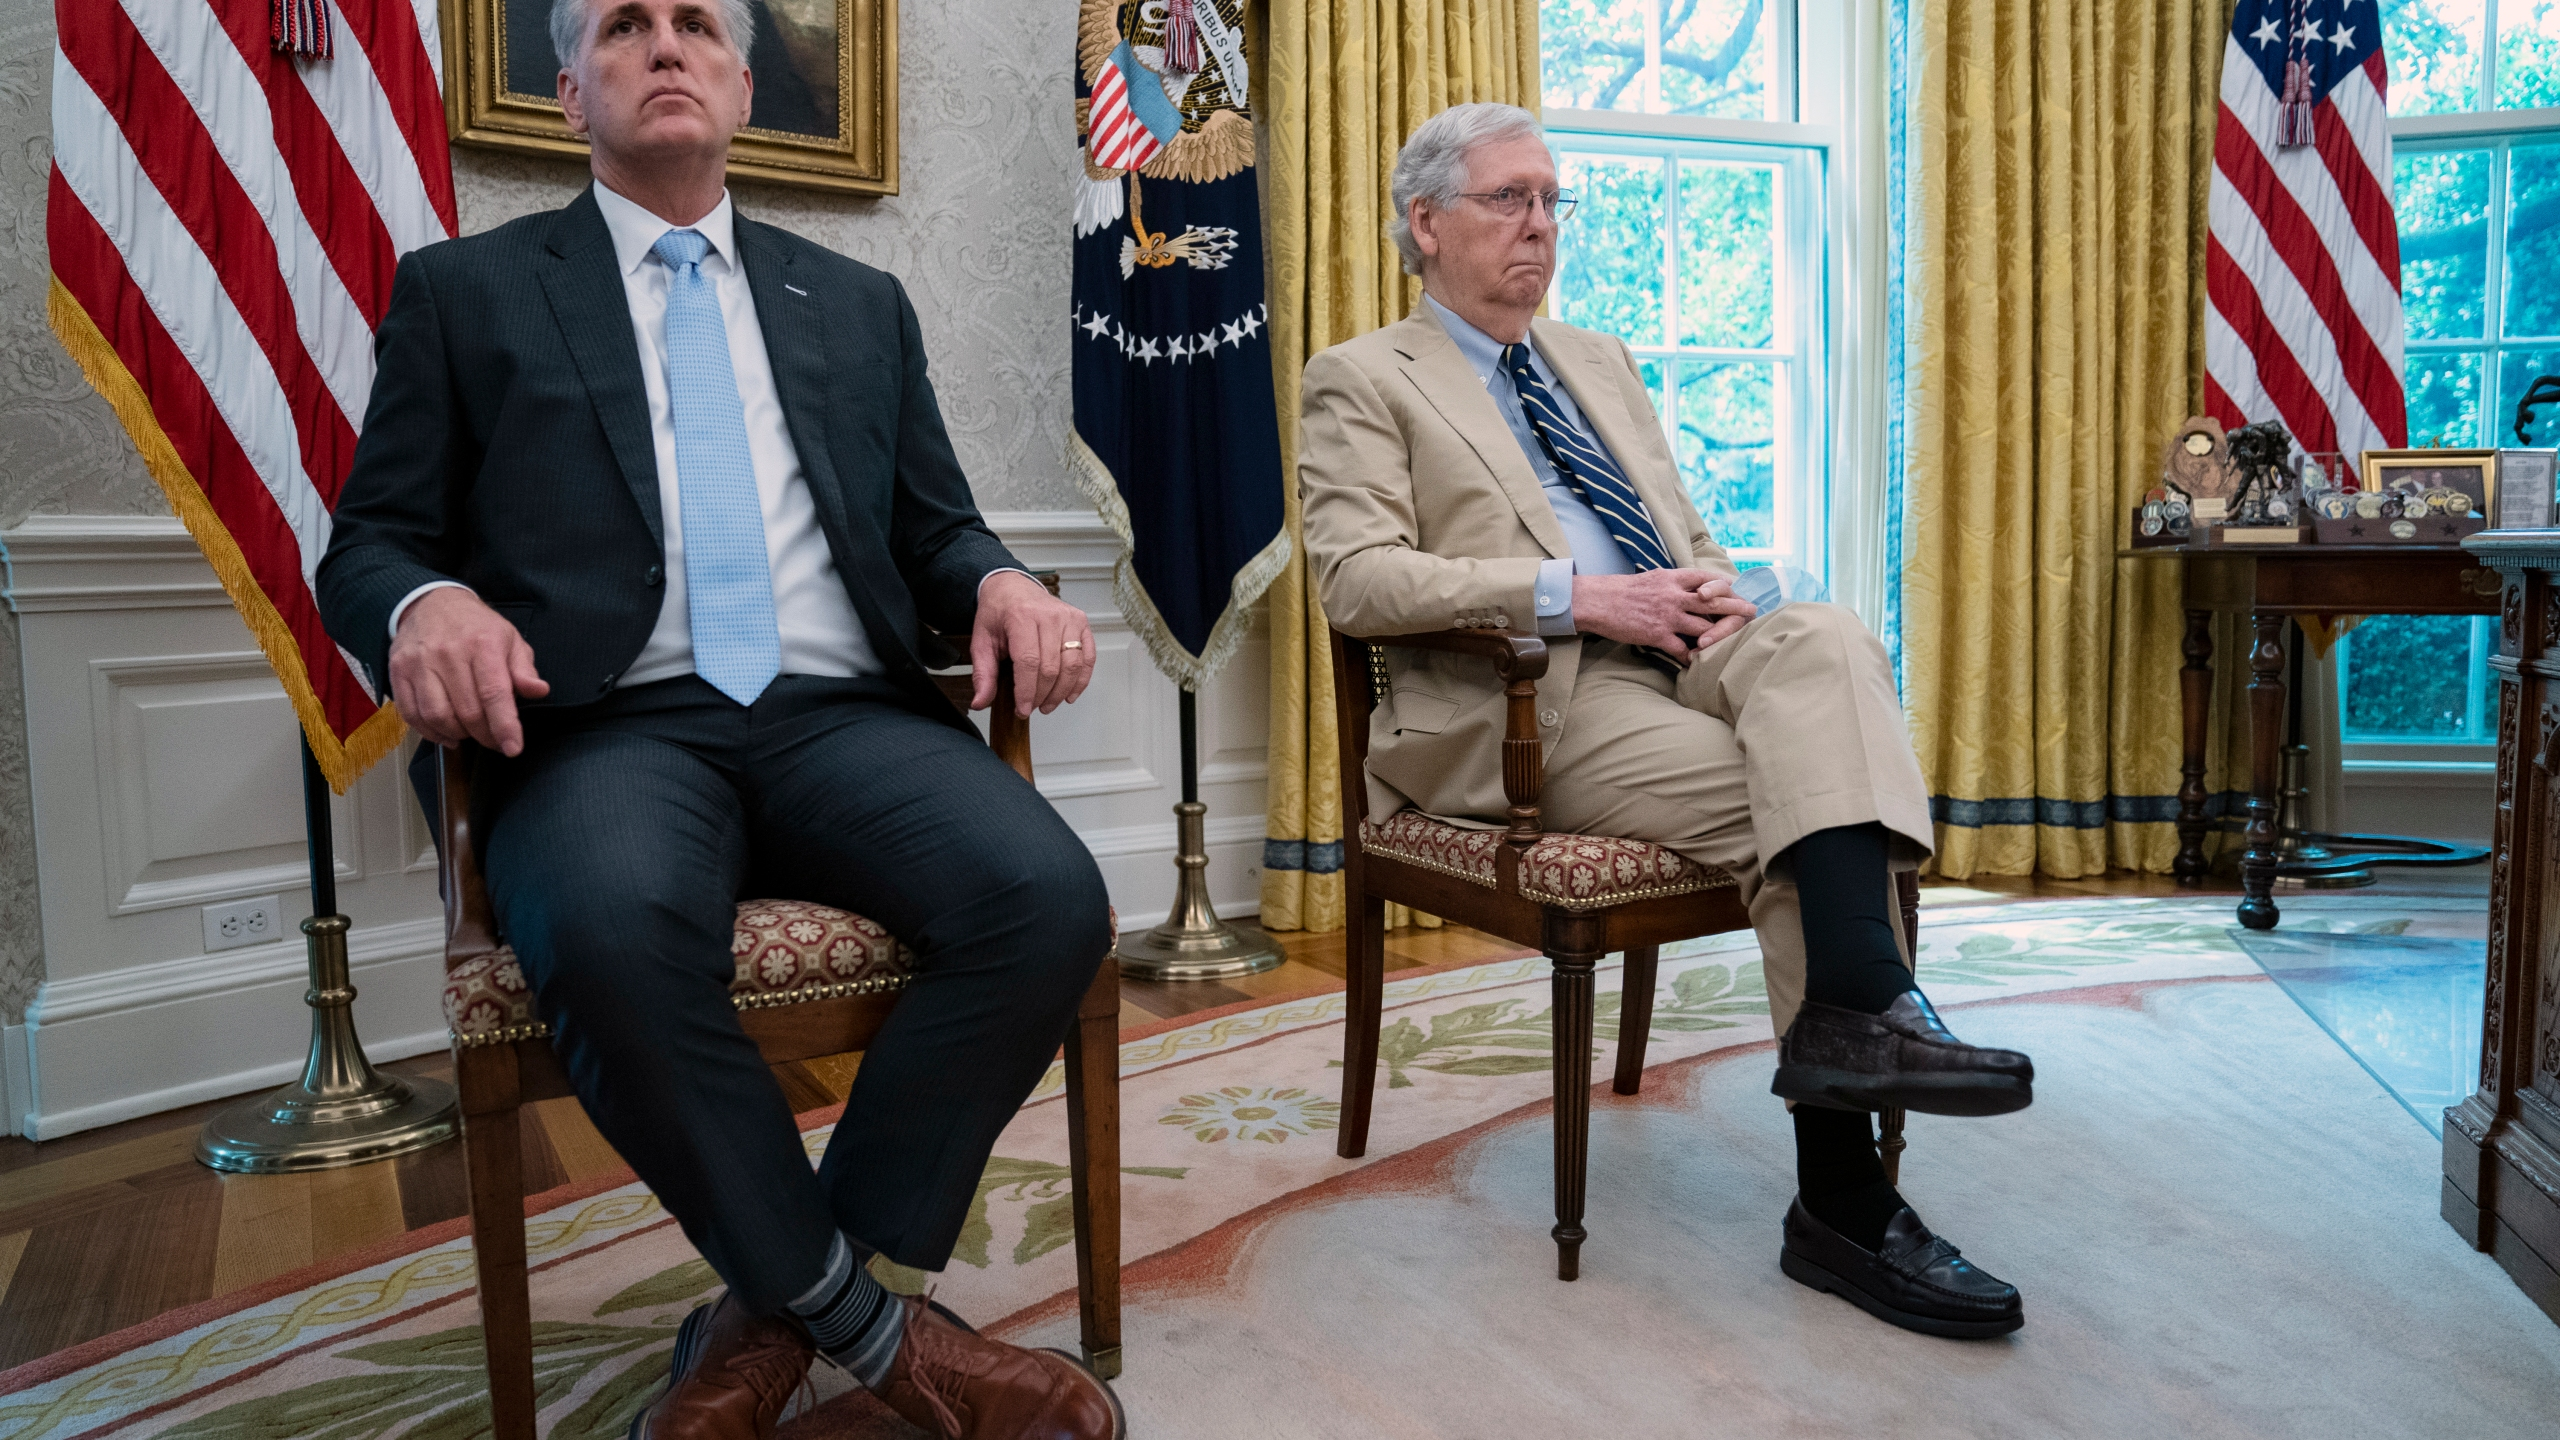 Mitch McConnell, Kevin McCarthy